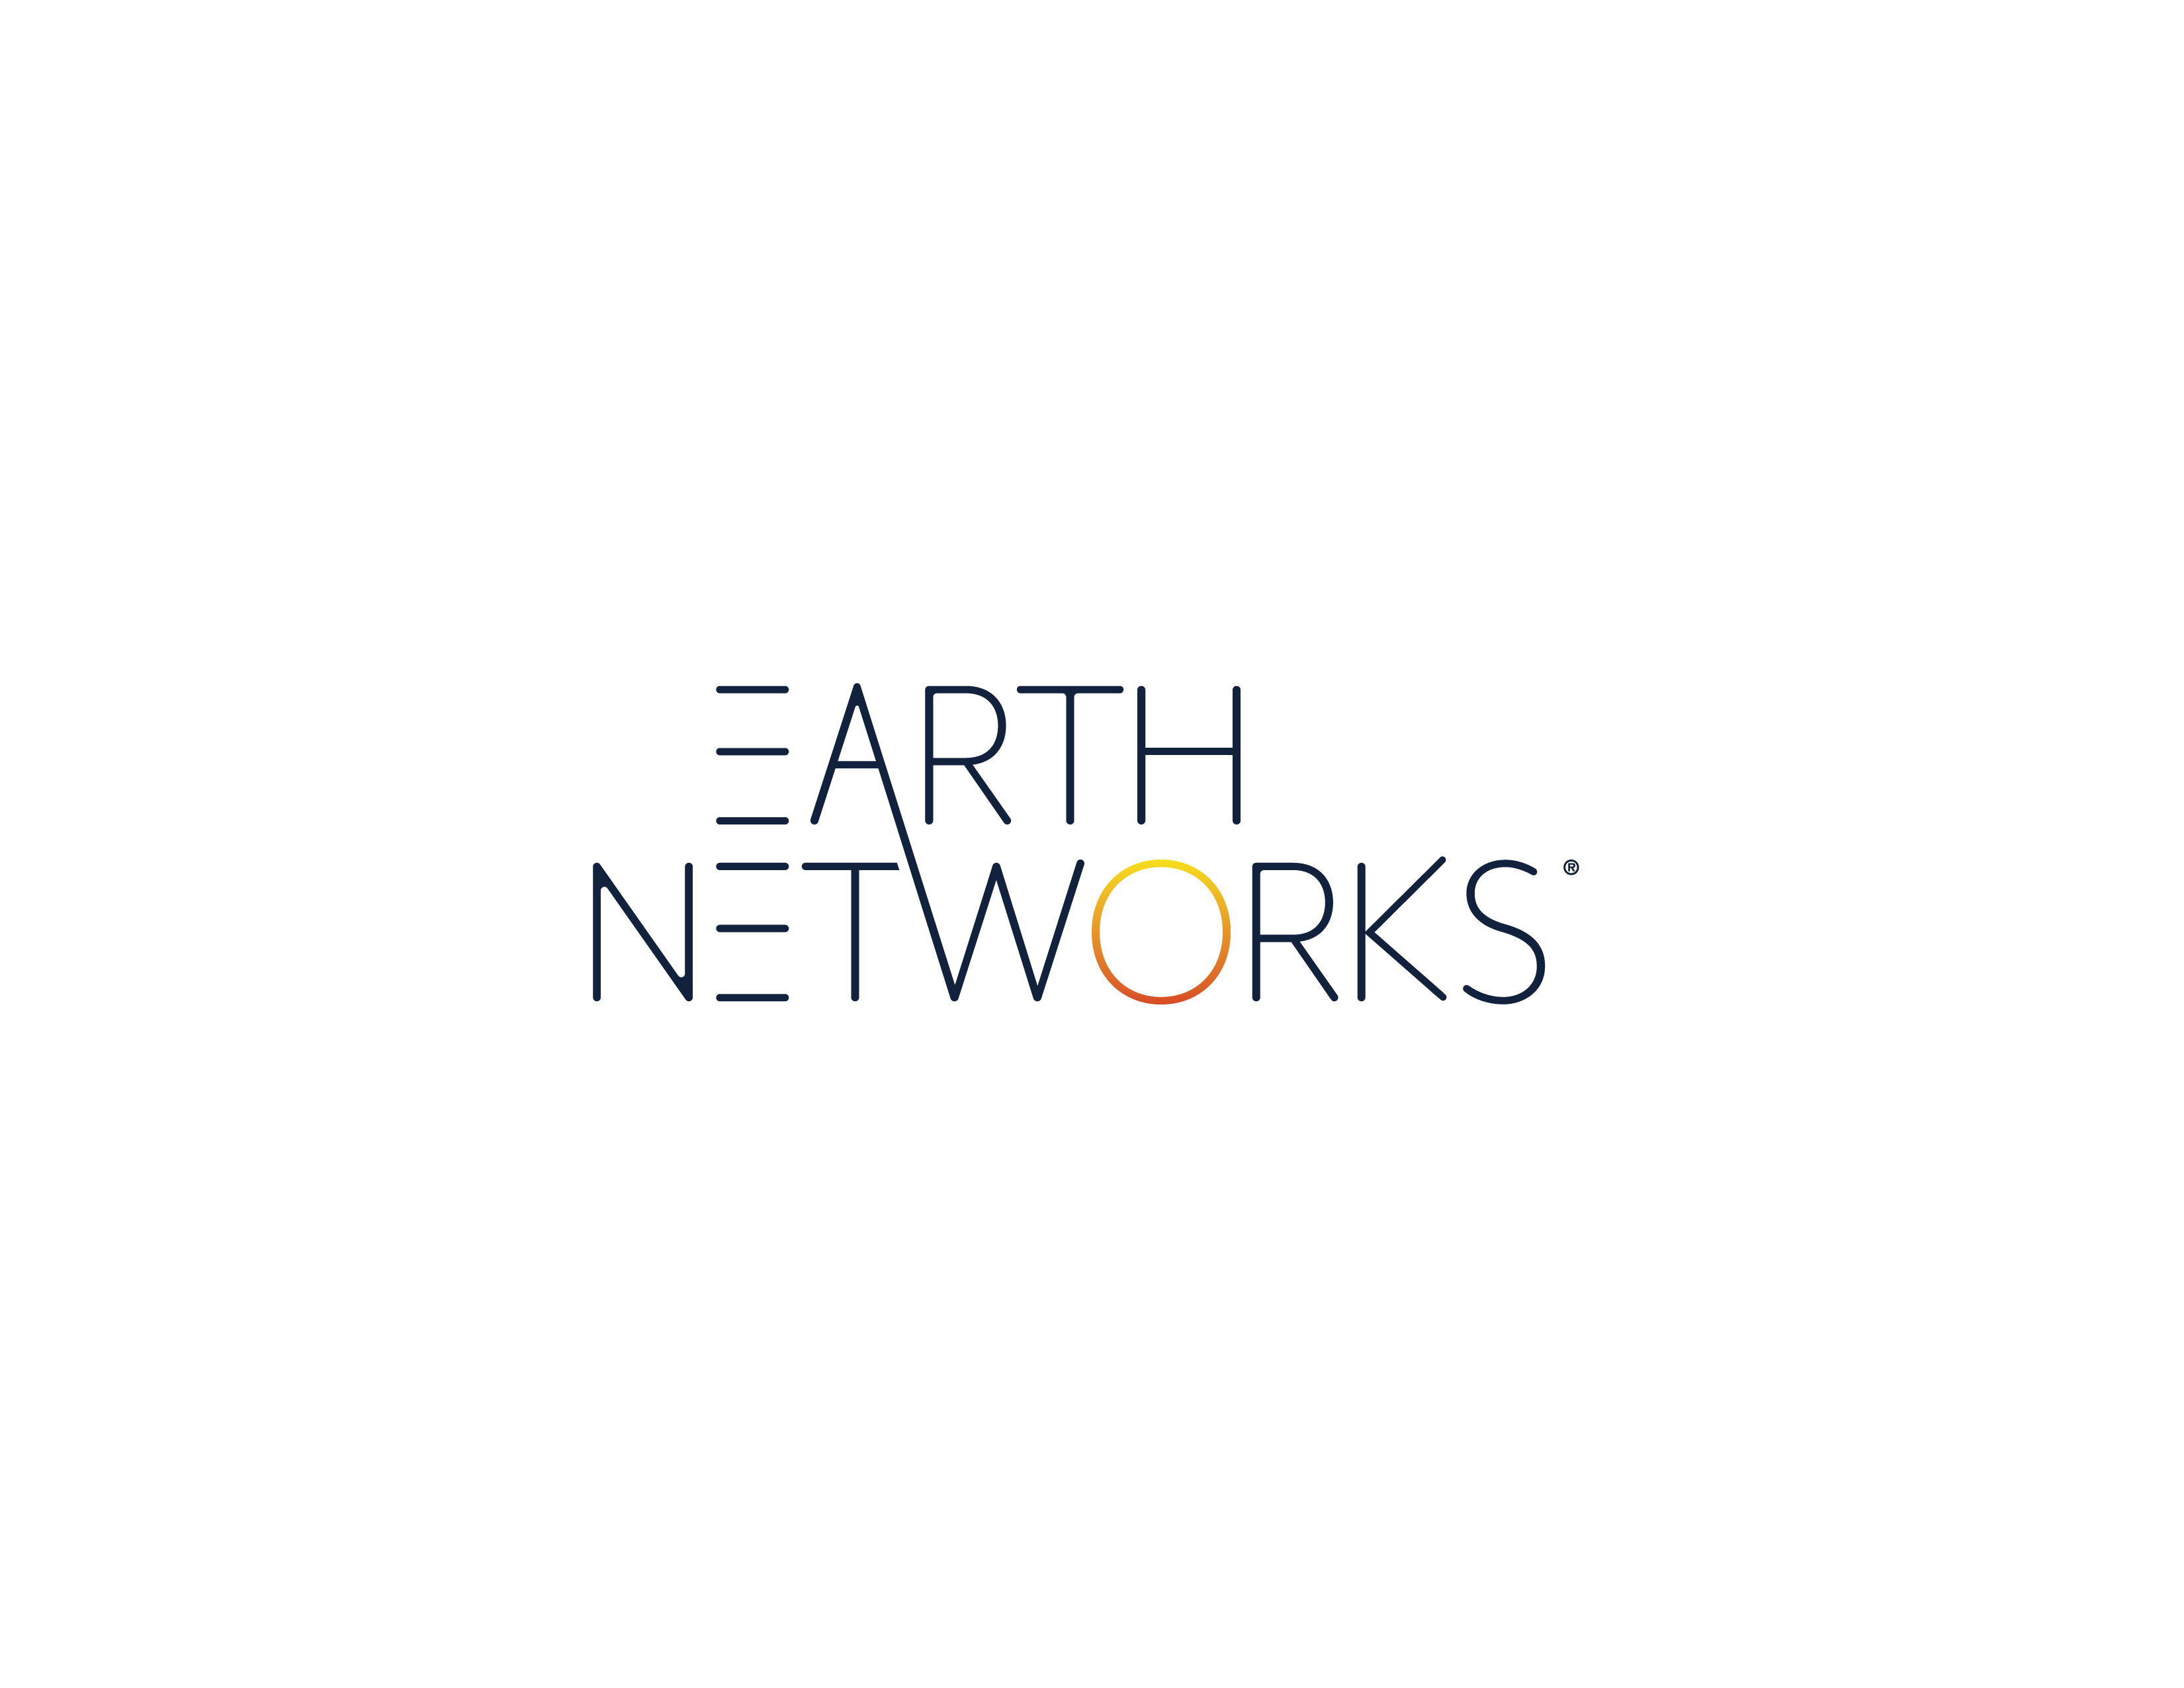 Earth-Networks-color-no-background[1][1][1]